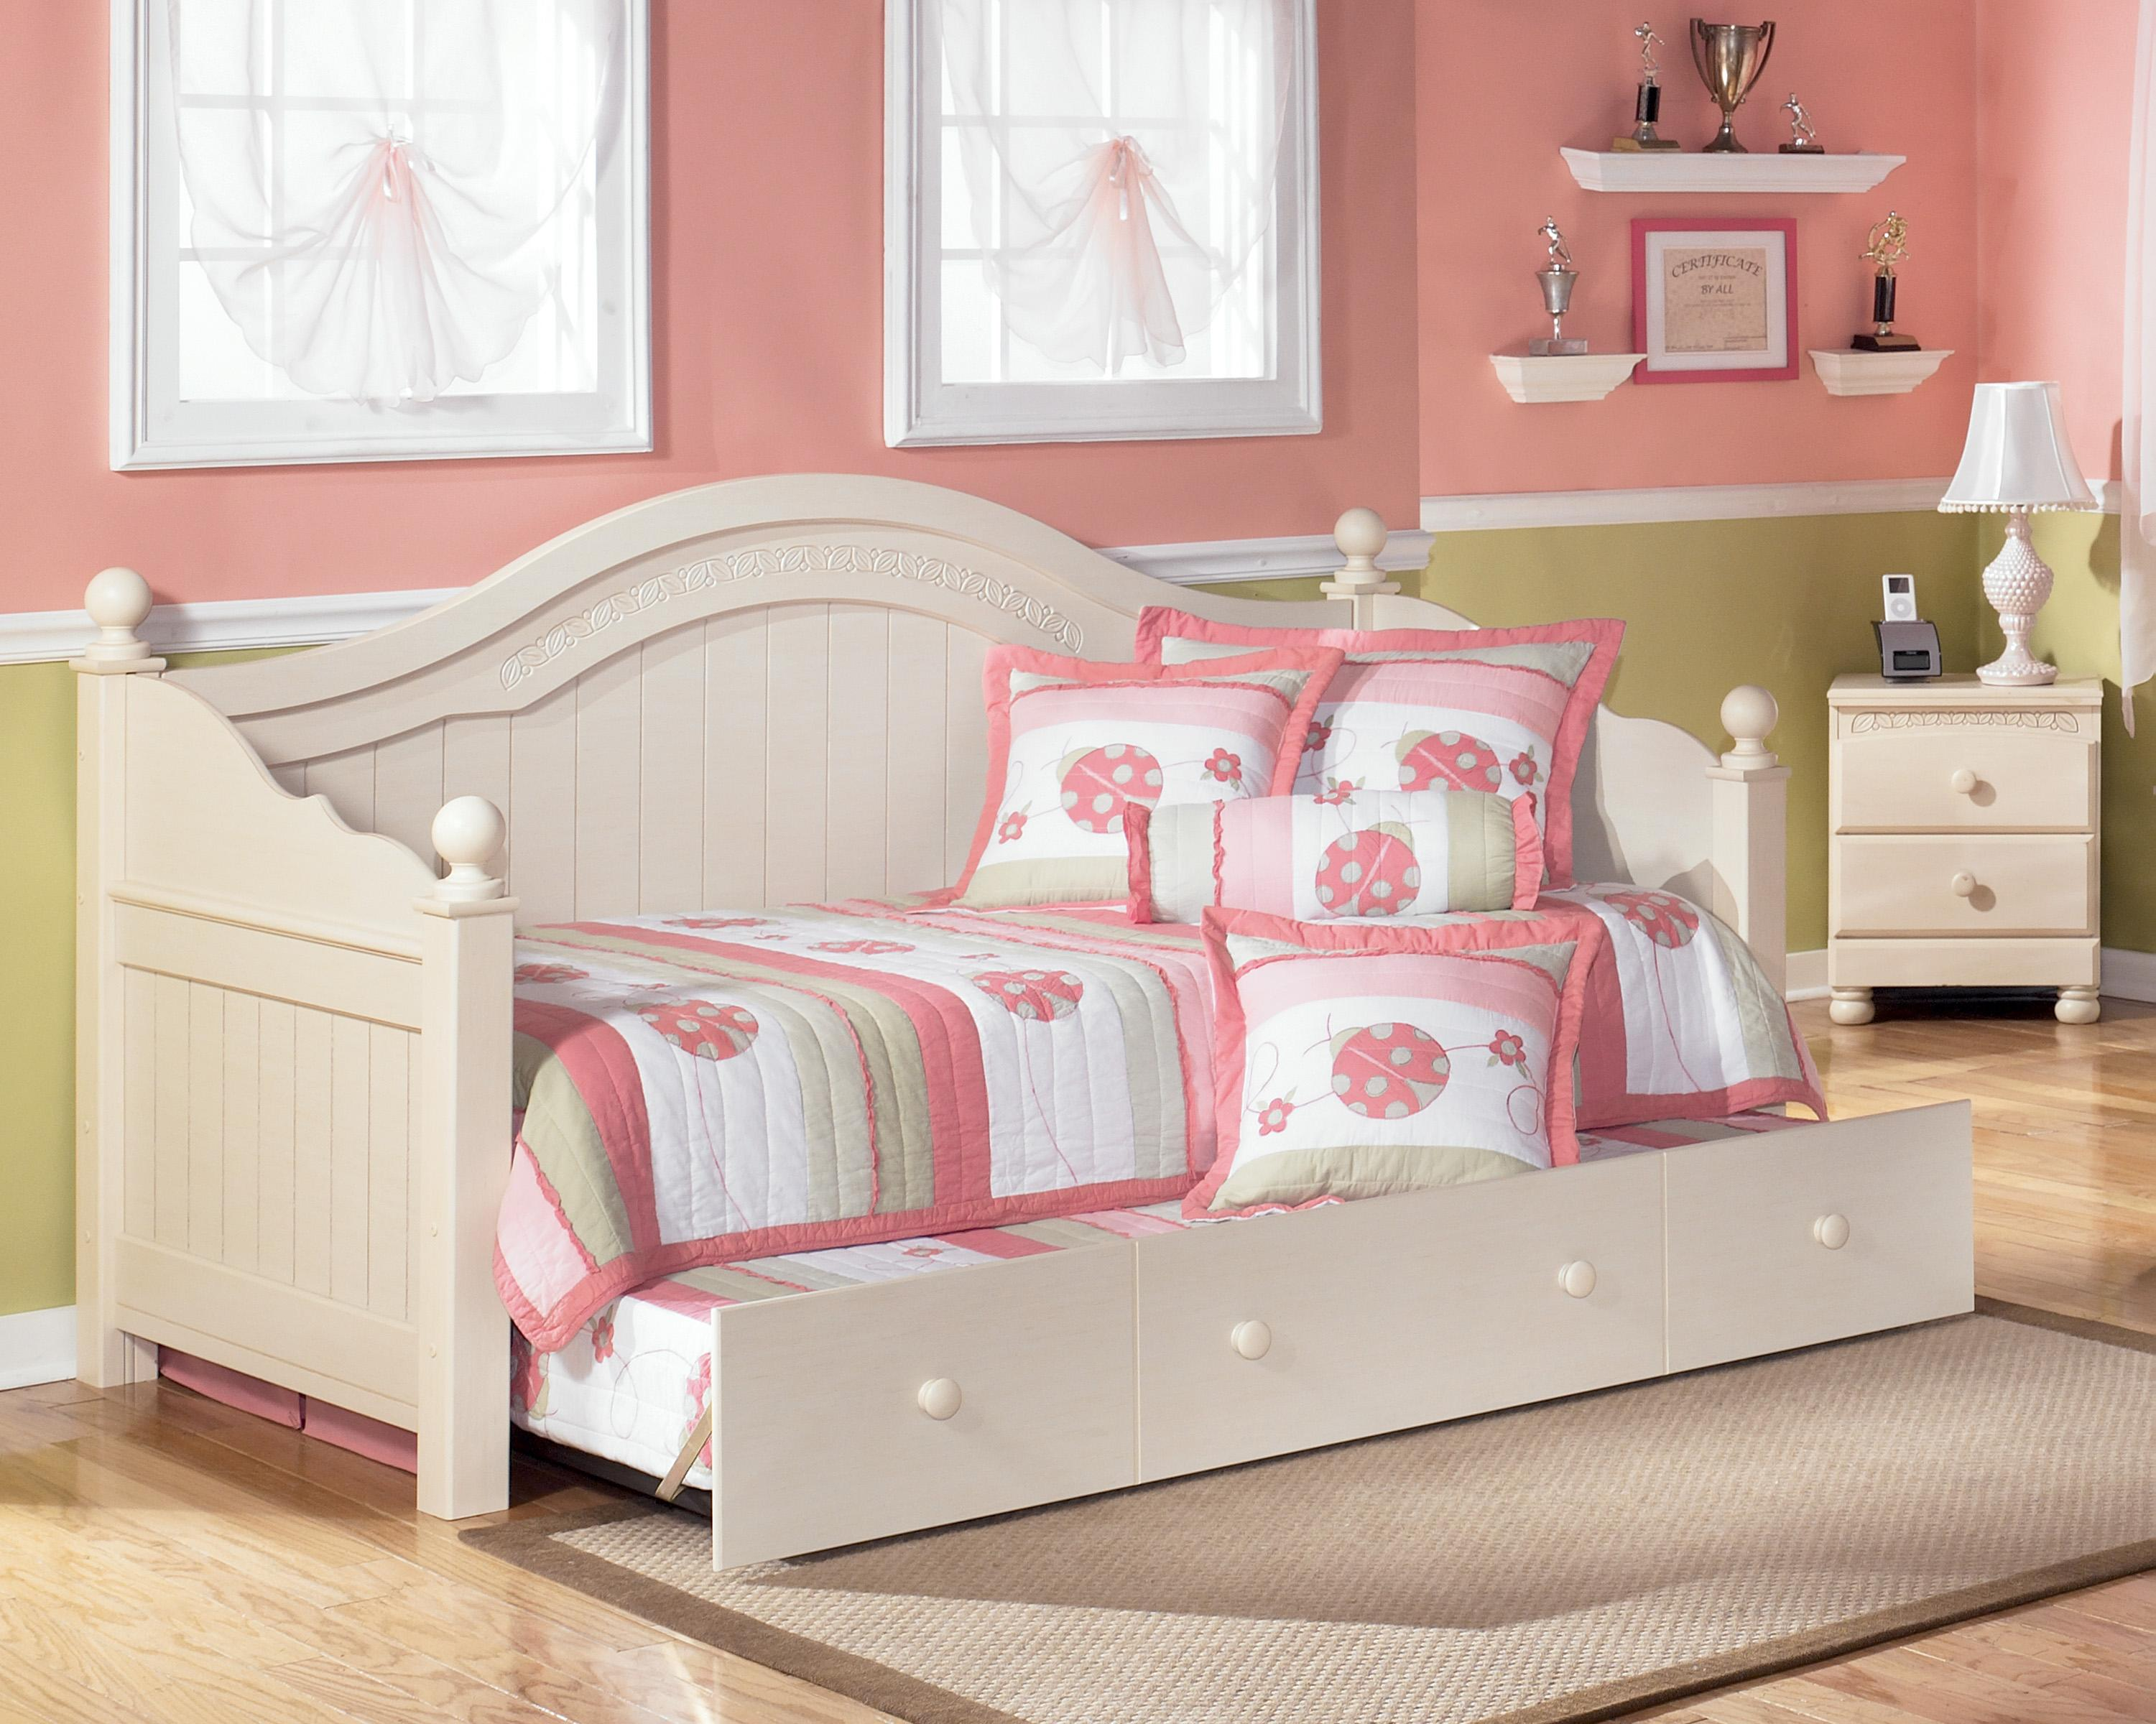 Signature Design By Ashley Cottage Retreat Full Poster Bed With Underbed Storage Wayside Furniture Headboard Footboard